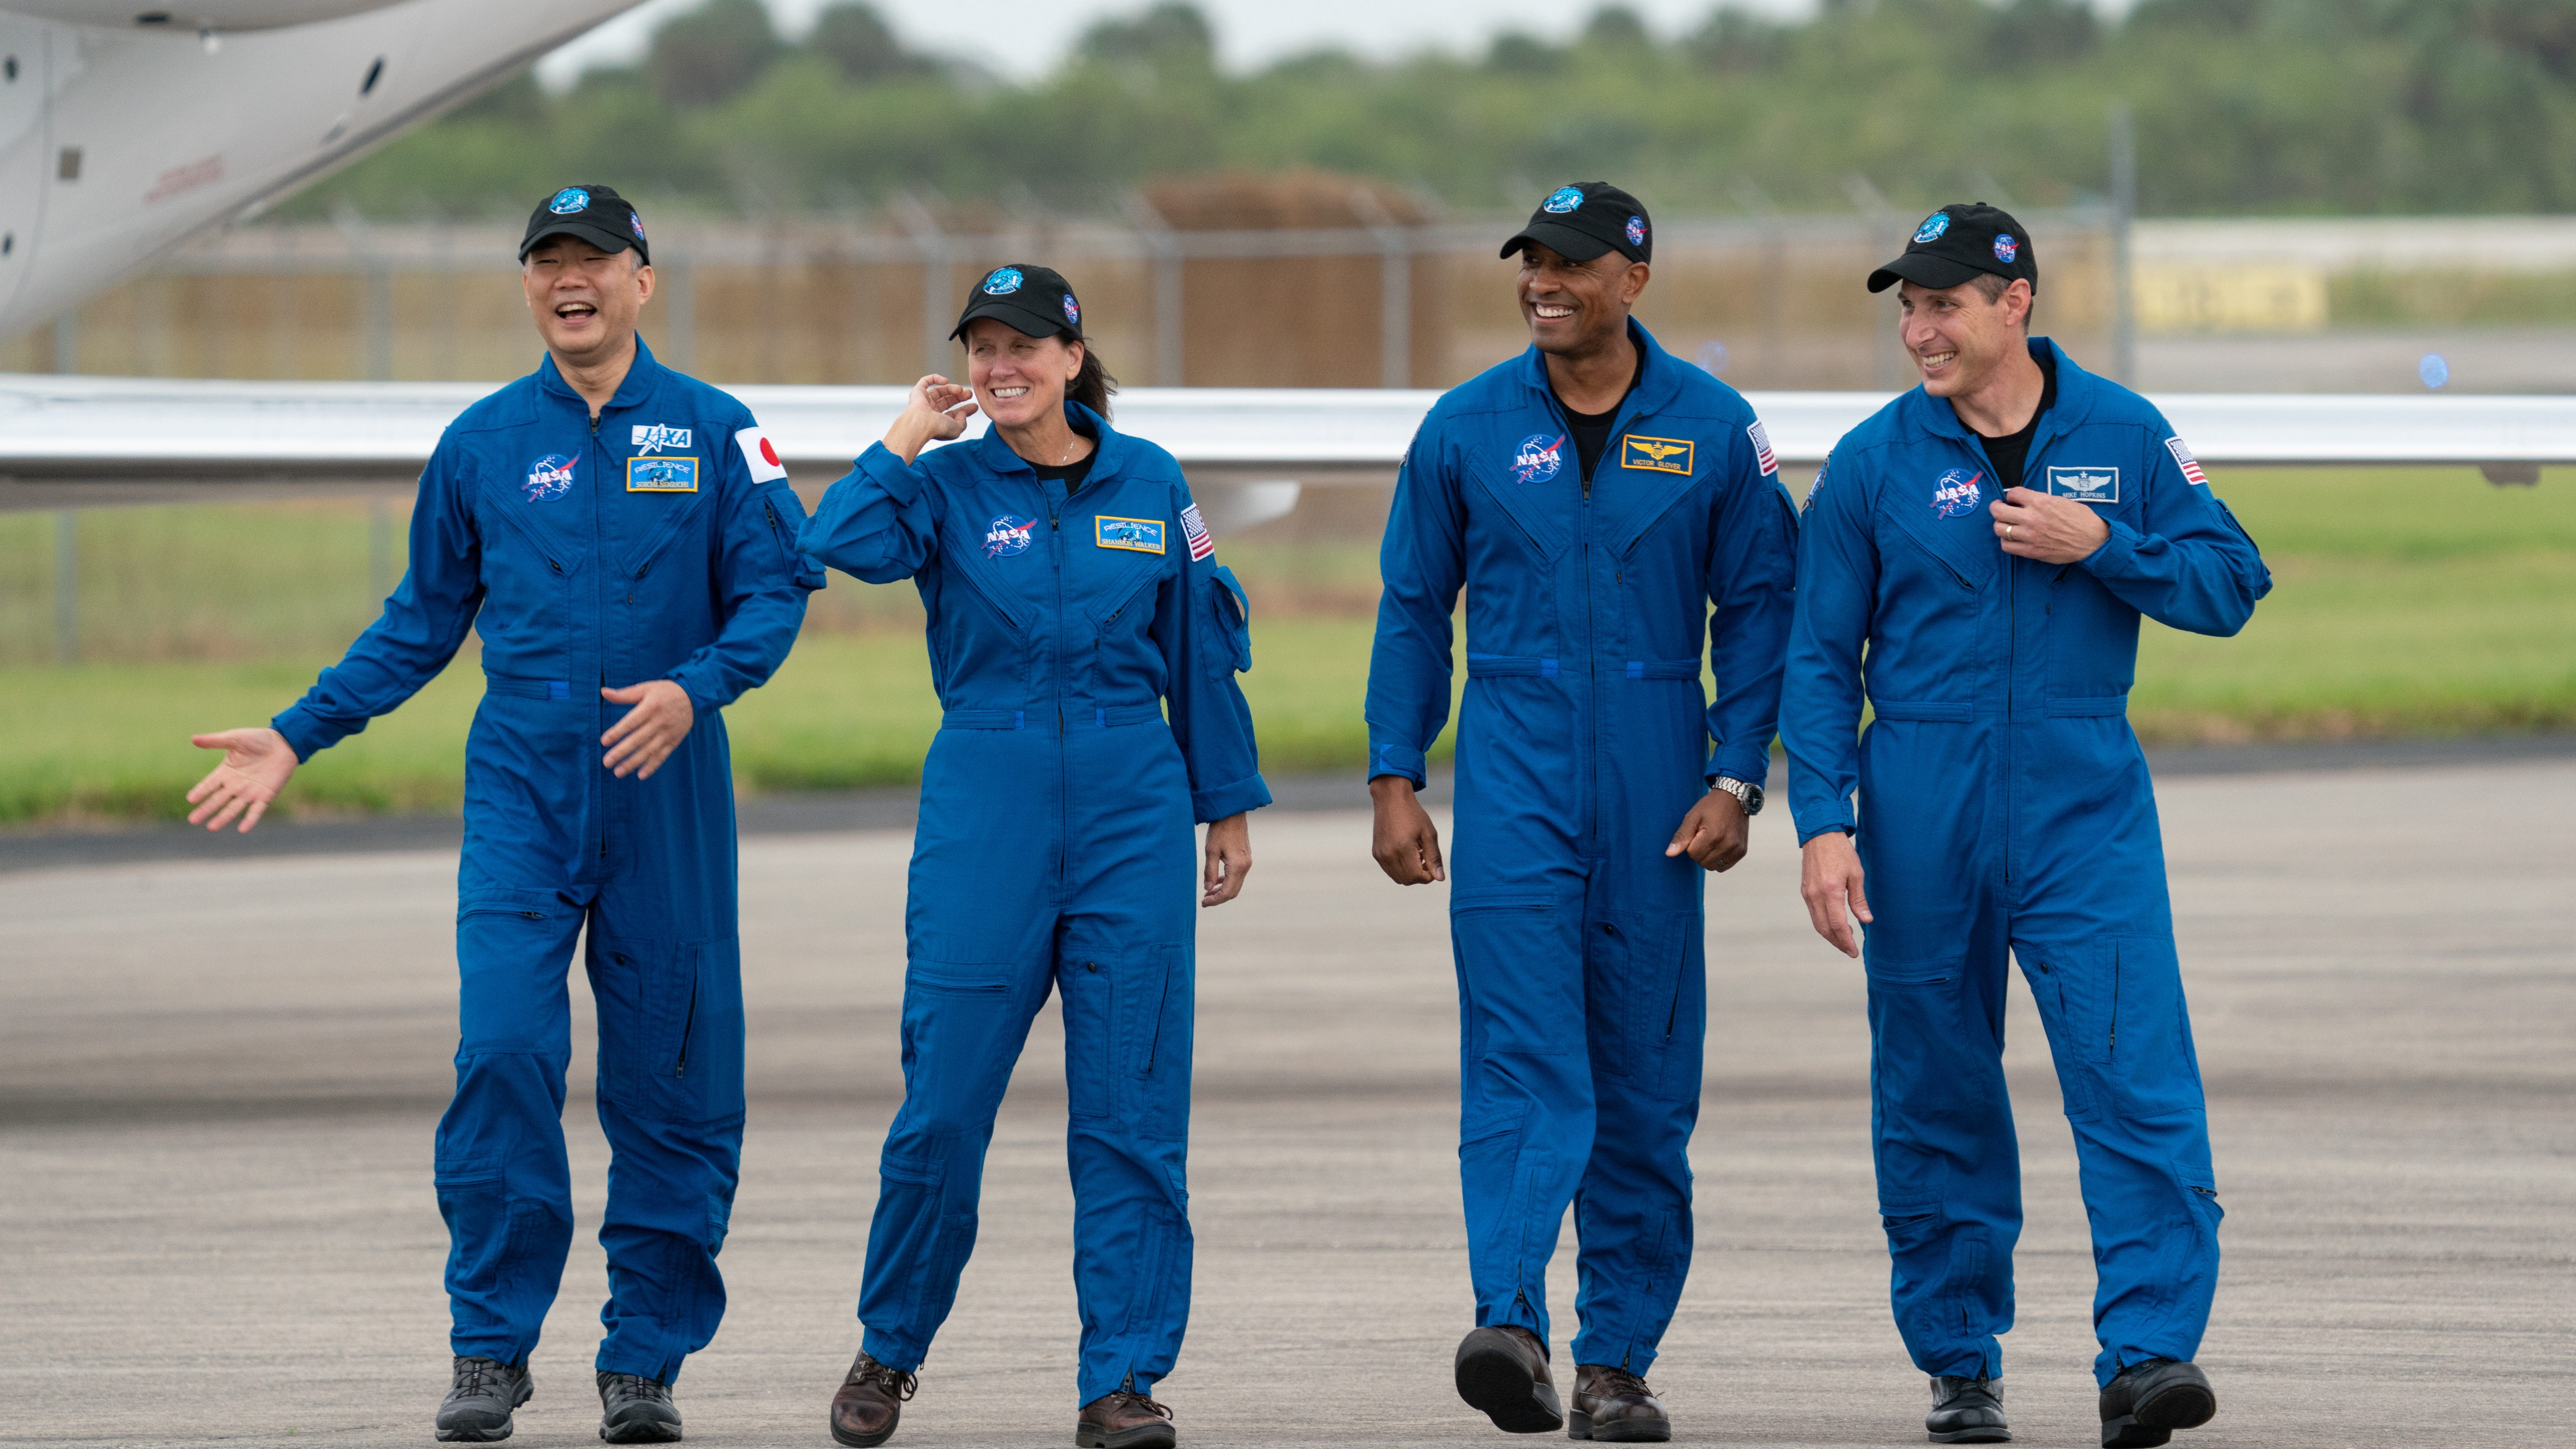 The four-person SpaceX Crew-1 astronaut team arrives at Kennedy Space Center on Sunday, Nov. 8, 2020, ahead of their launch to the International Space Station. A Falcon 9 rocket and Crew Dragon capsule will host their flight.